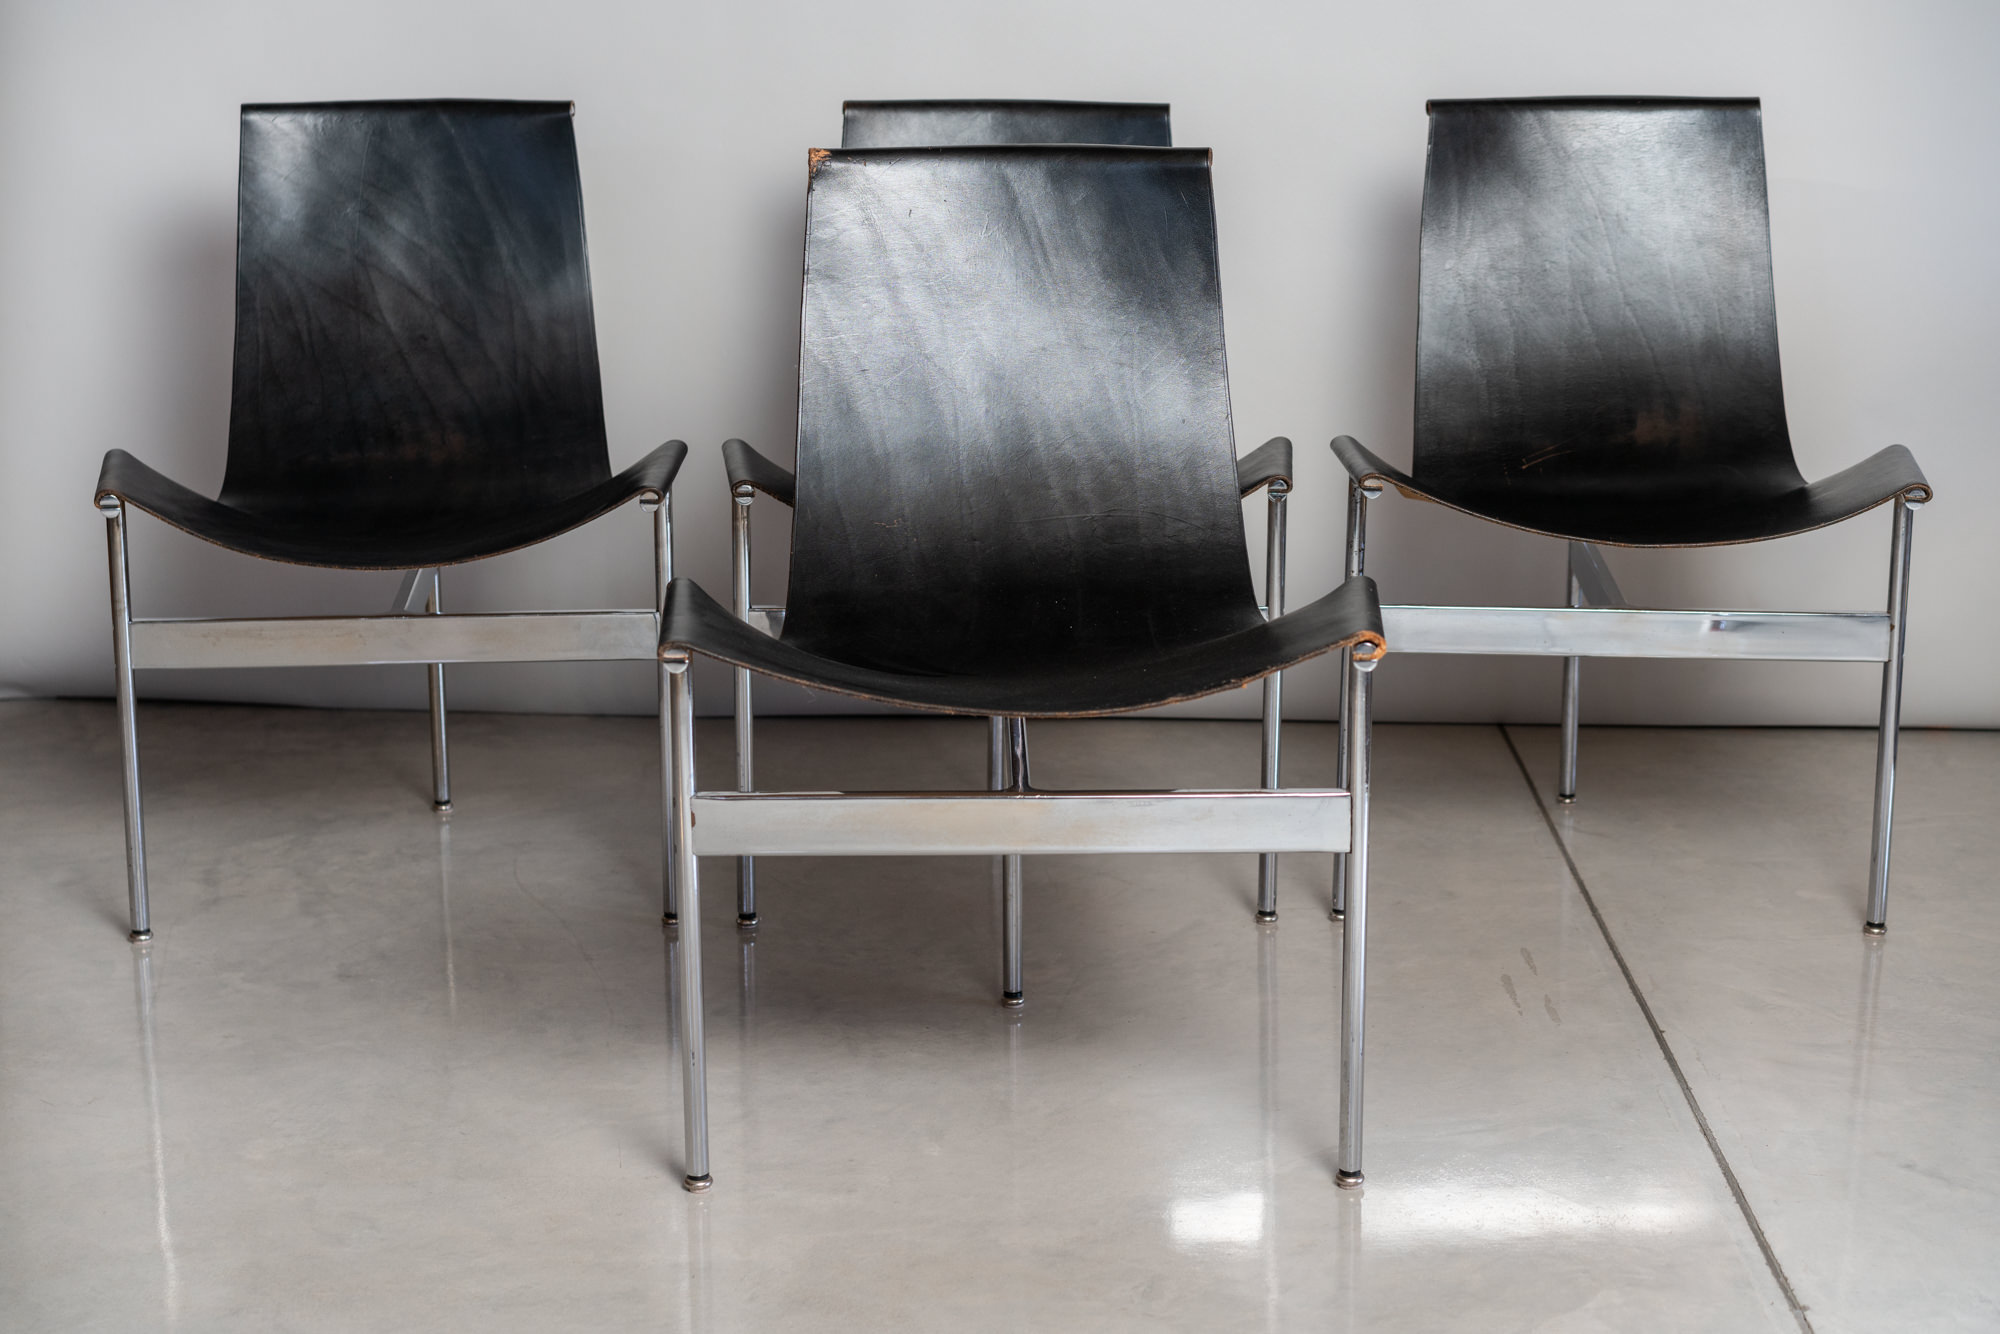 Set of 4 Laverne T-Chairs - $2800